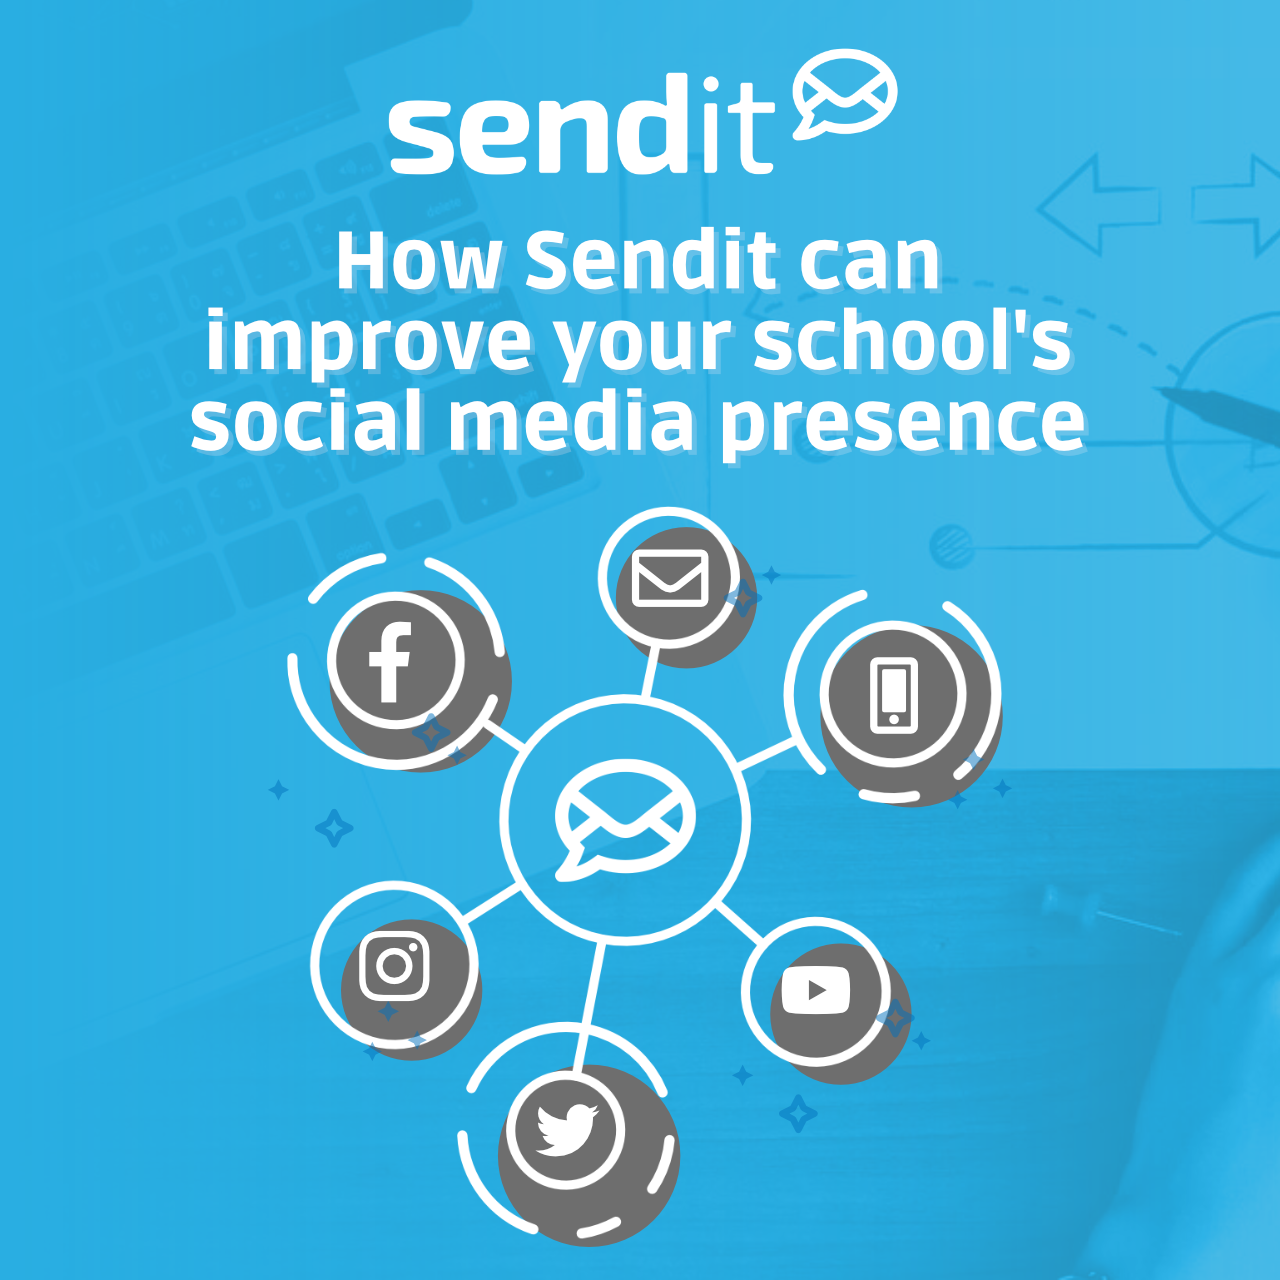 SendIt-Improves-Social-Media-2